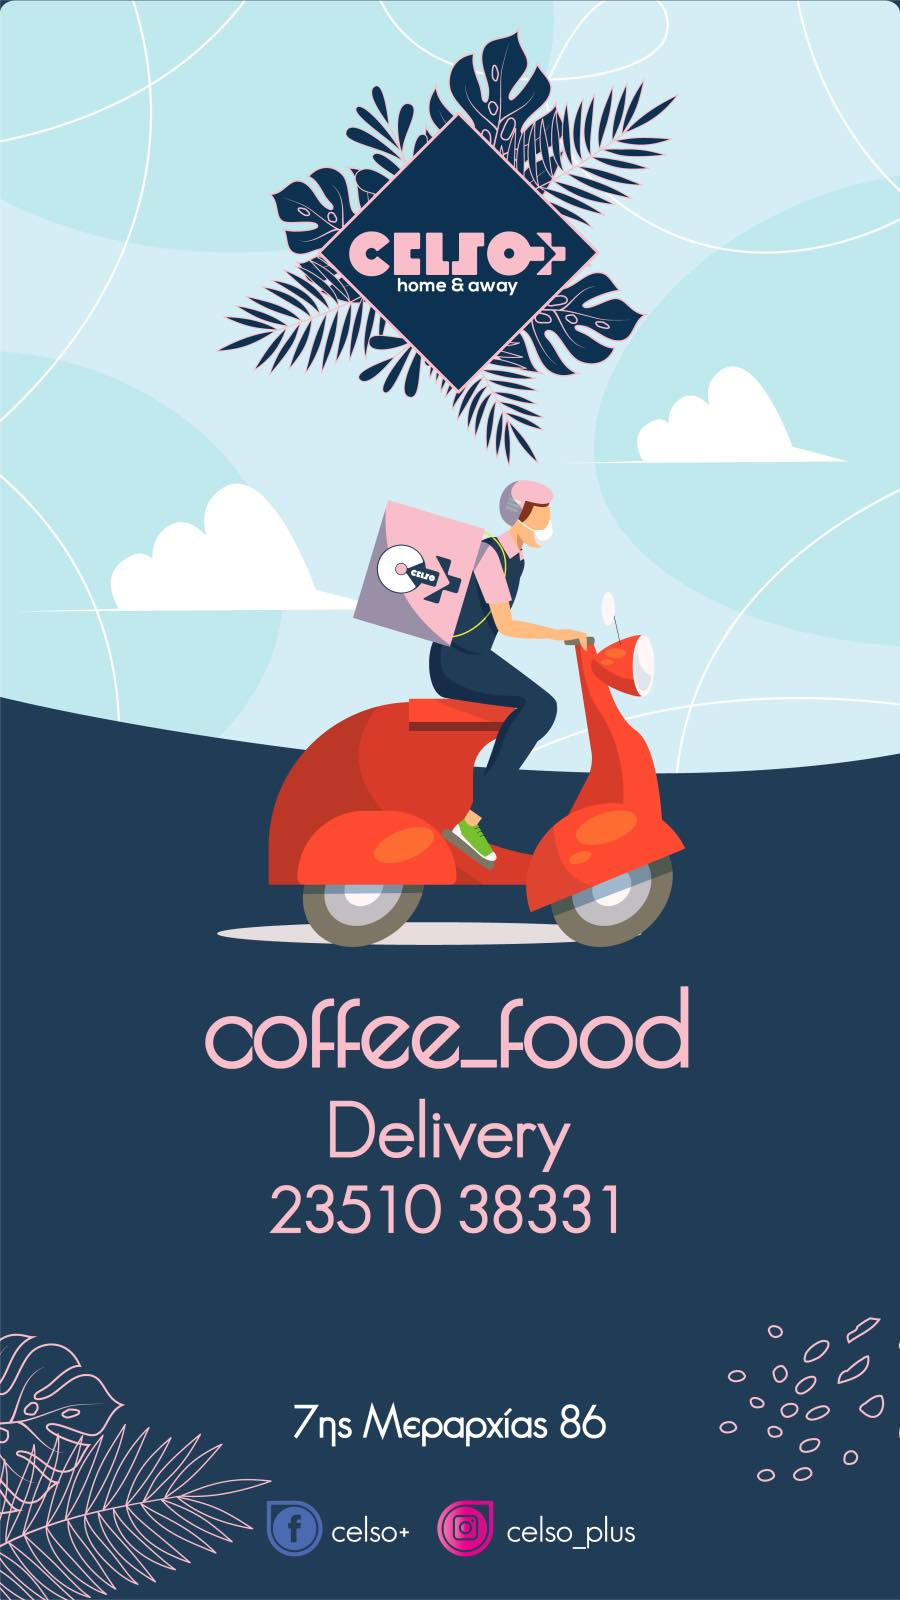 Celso_plus  Coffee_food Delivery